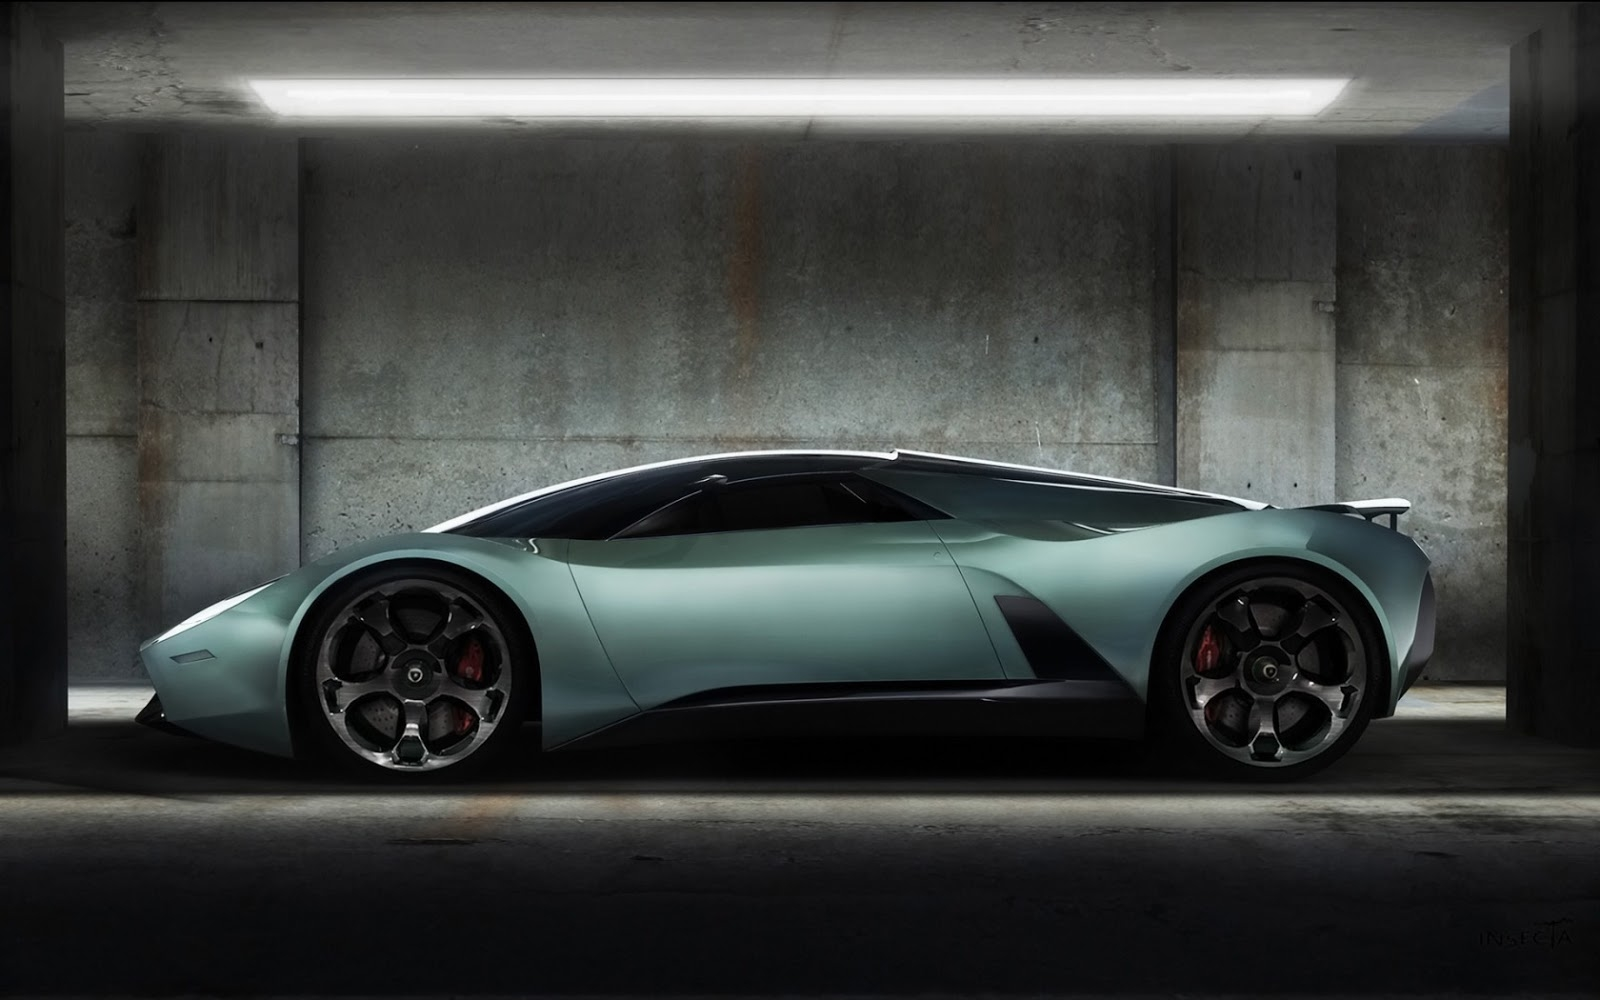 Sport Car Wallpaper Tumblr: Green Sports Car Pictures, Photos, And Images For Facebook